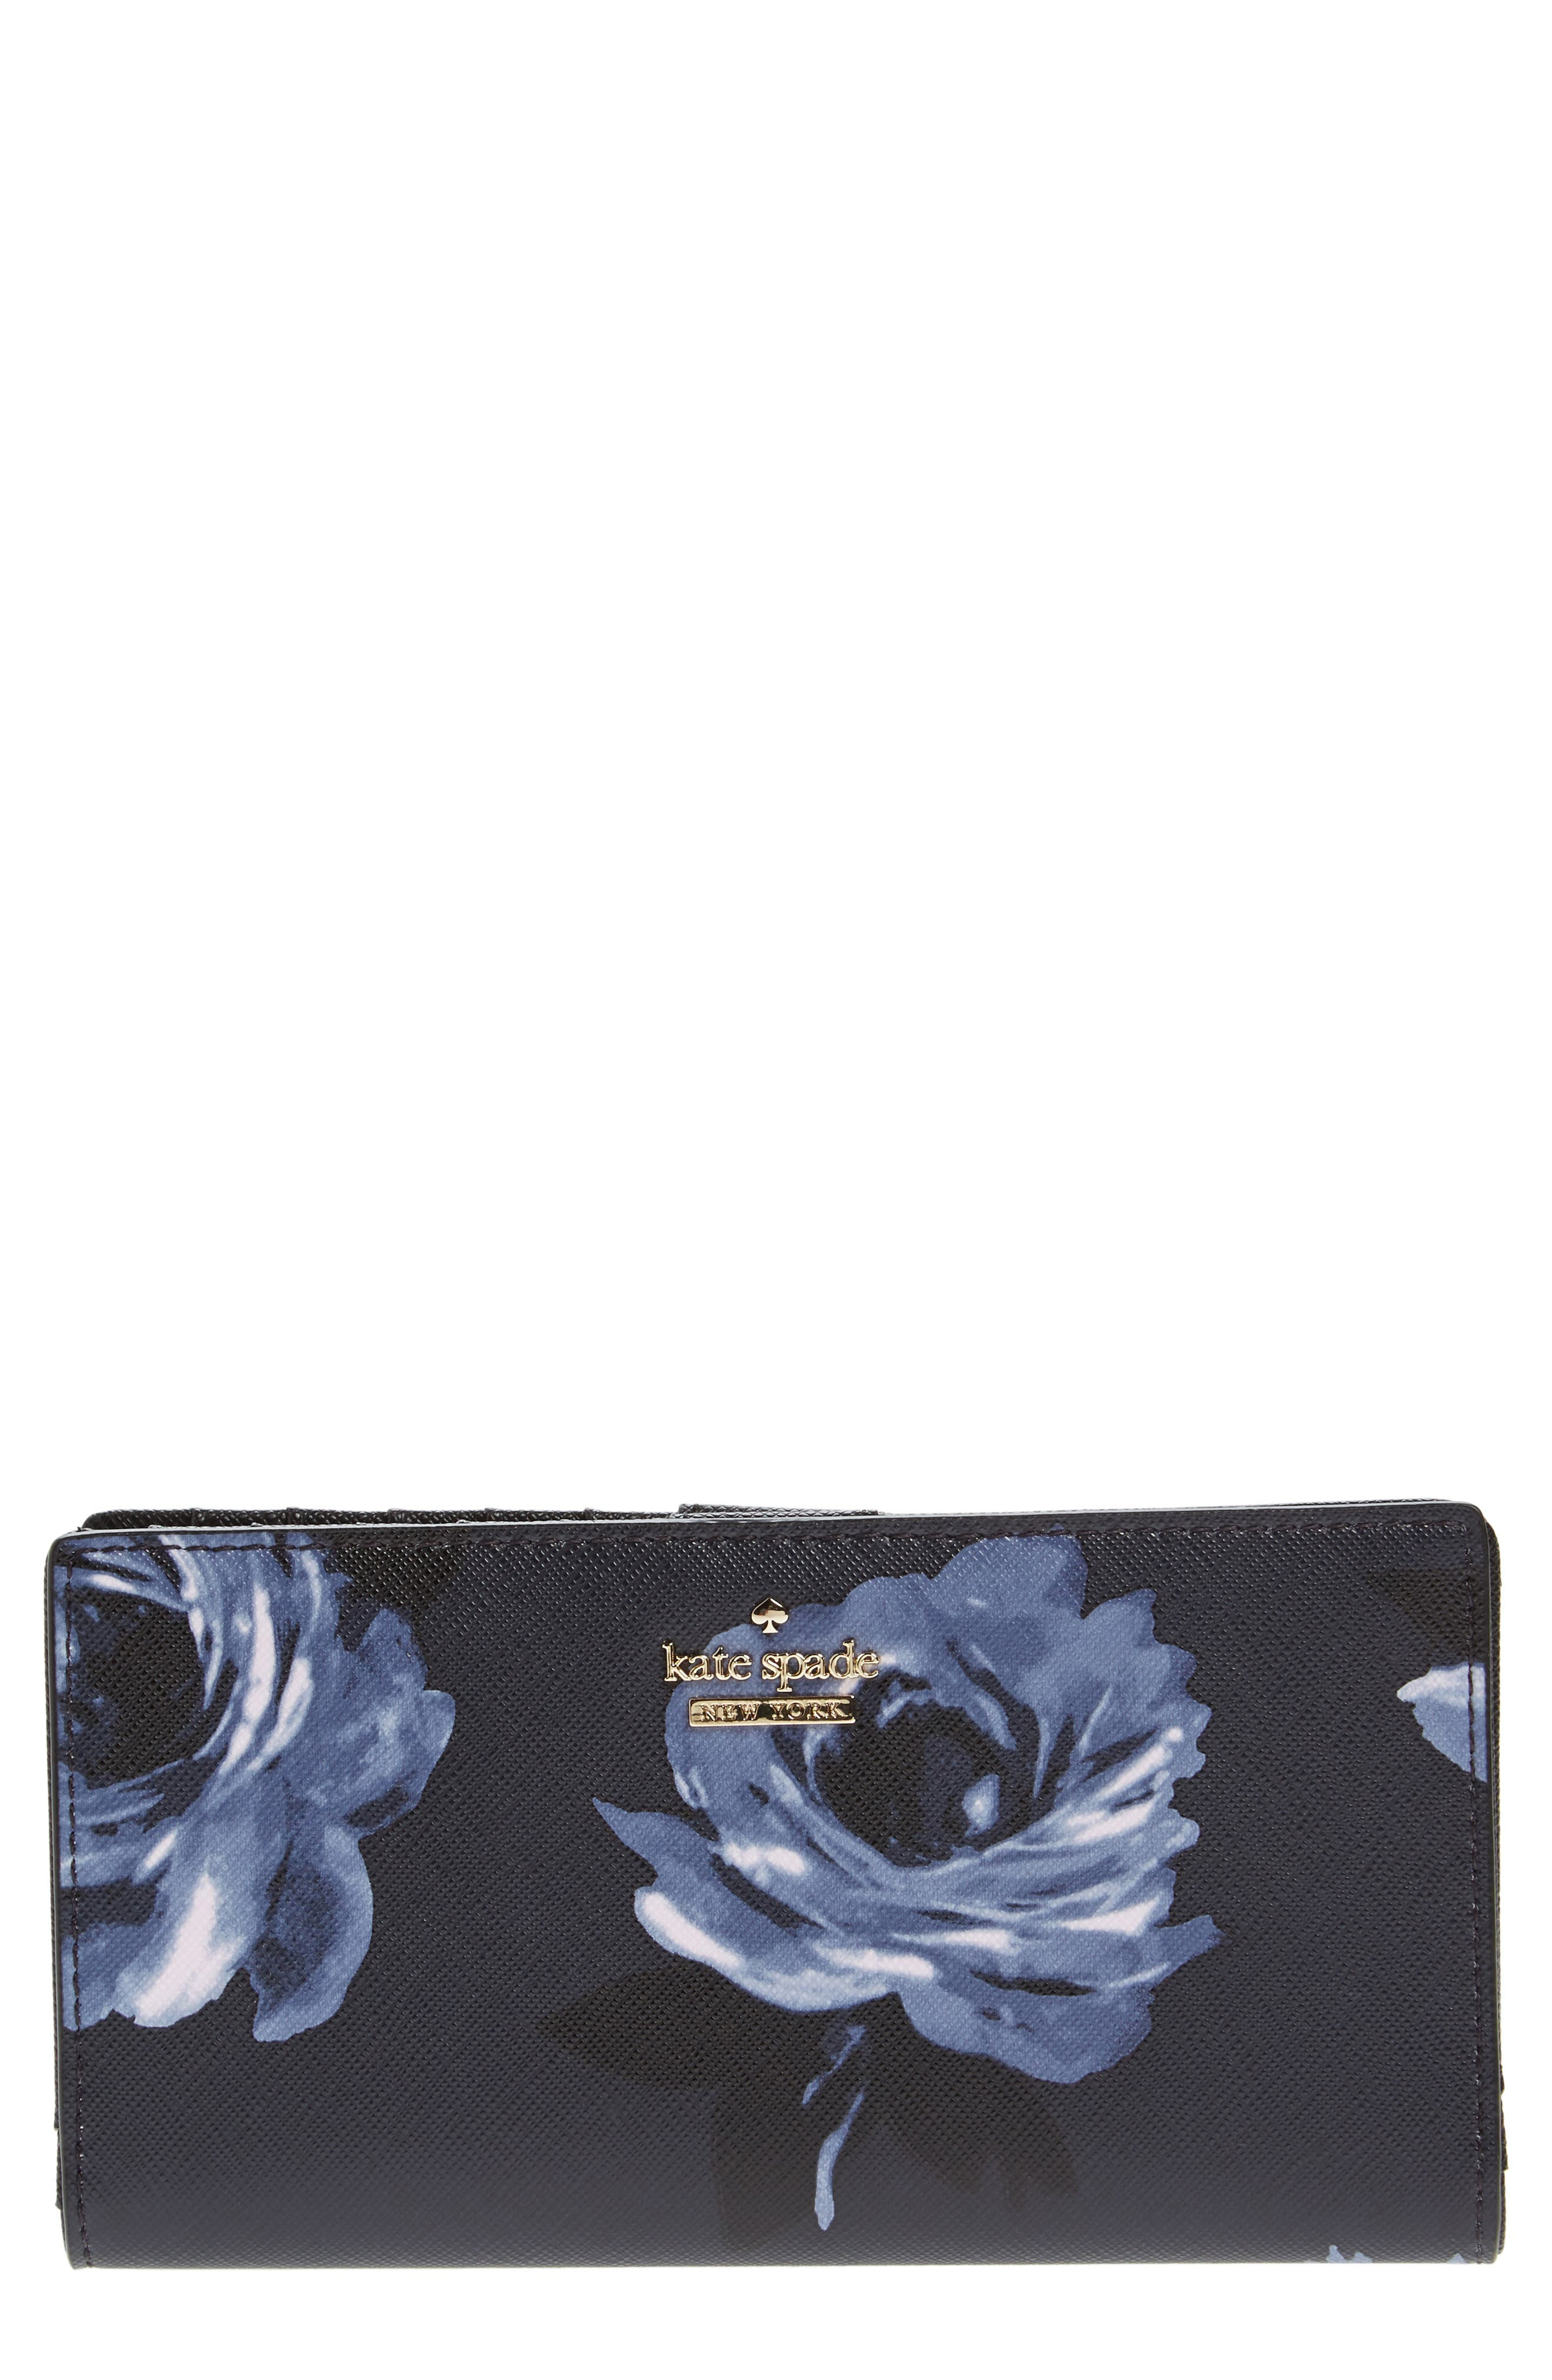 cameron street - stacy leather wallet,                             Main thumbnail 1, color,                             458